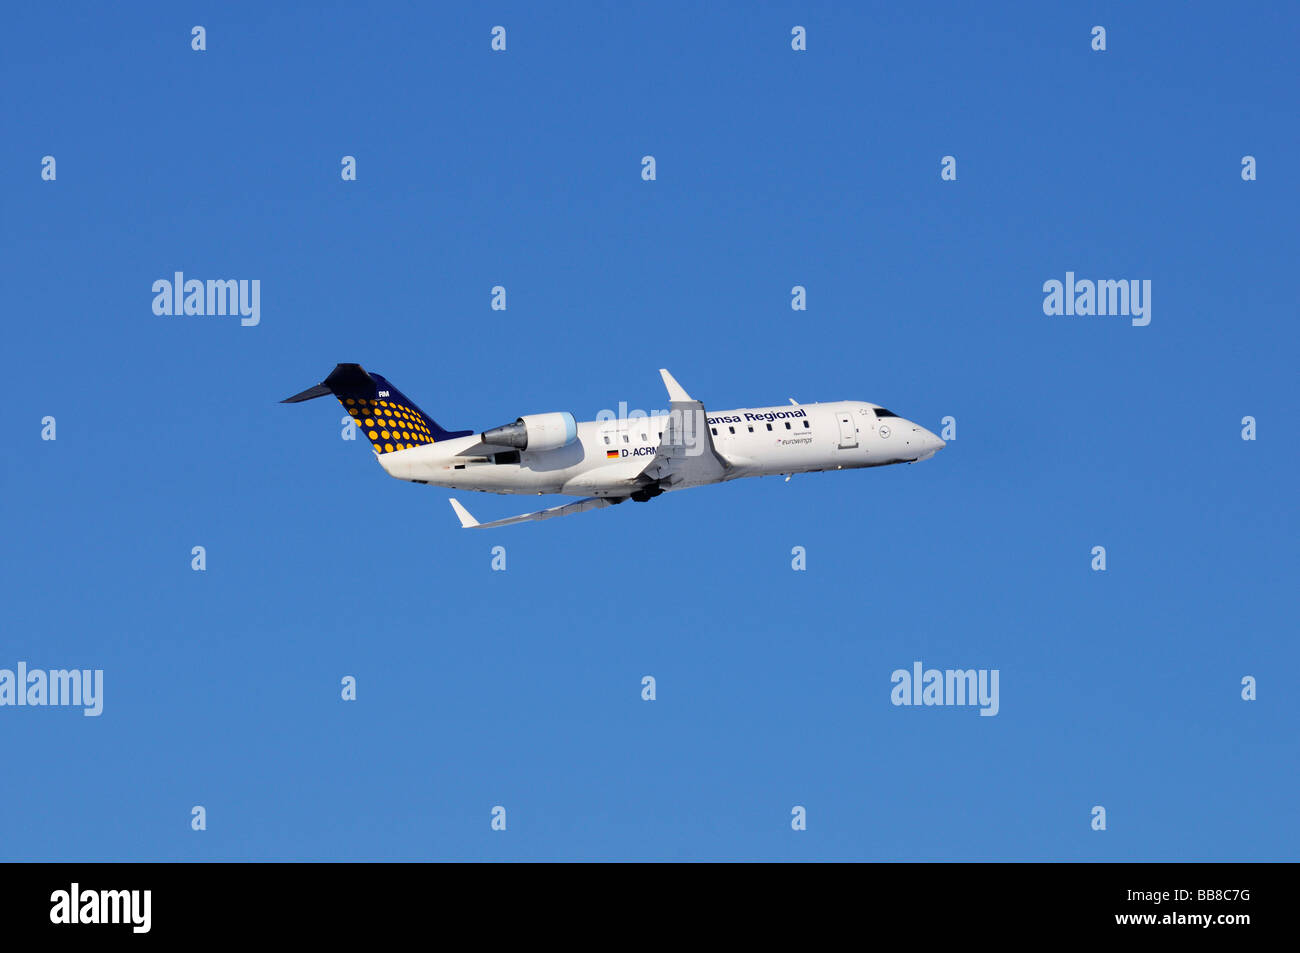 Commercial aircraft, Lufthansa Regional Eurowings, Canadair Regional Jet CRJ200, against a blue sky - Stock Image